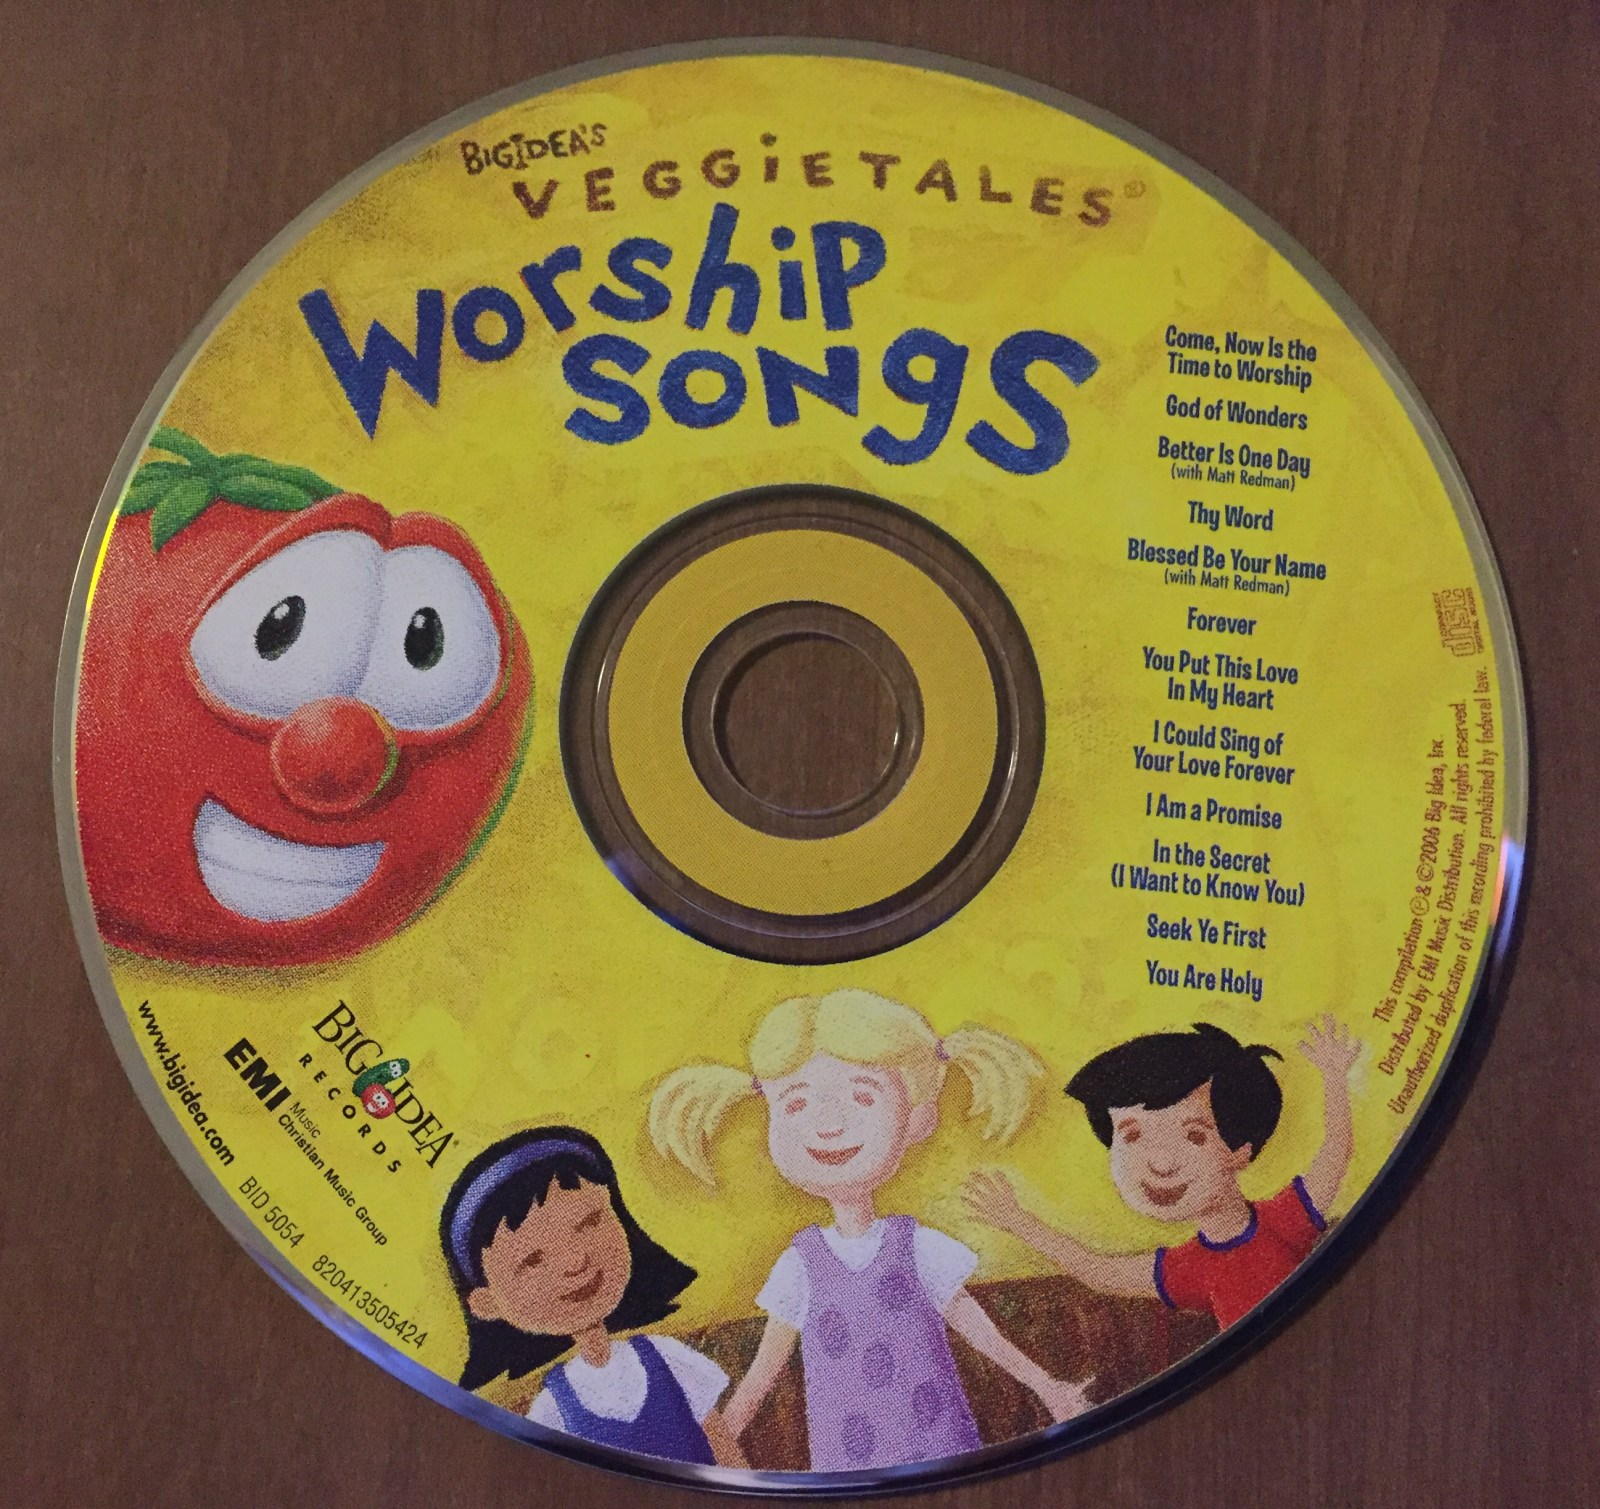 Veggie Tales Worship Songs CD on a wooden table